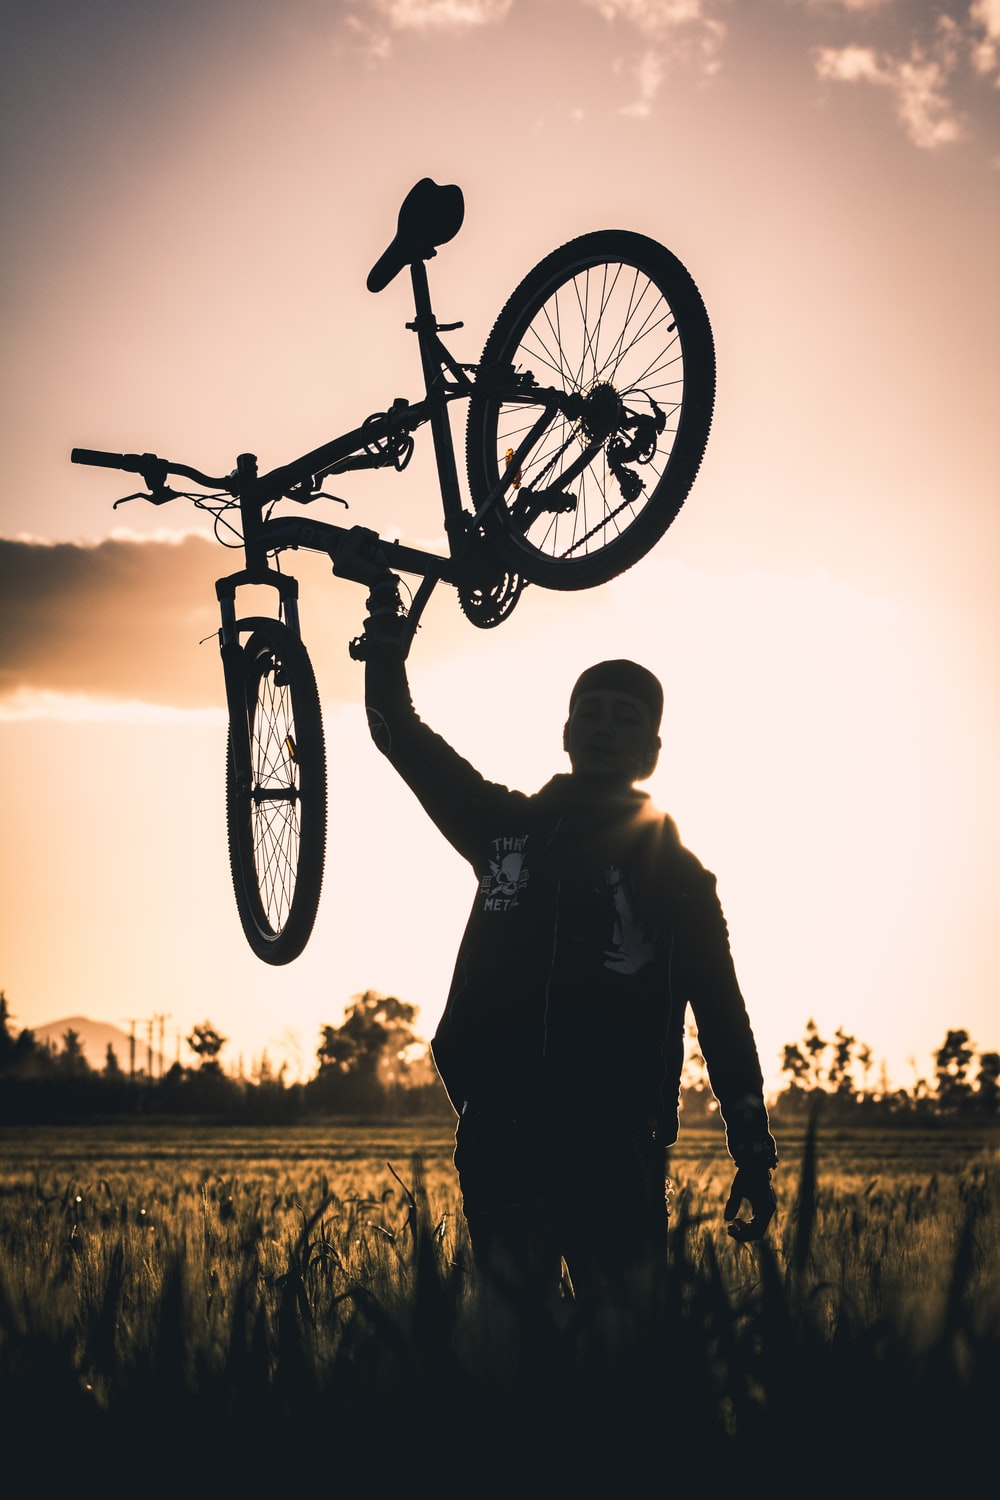 man carrying bike at frassfield during golden hour